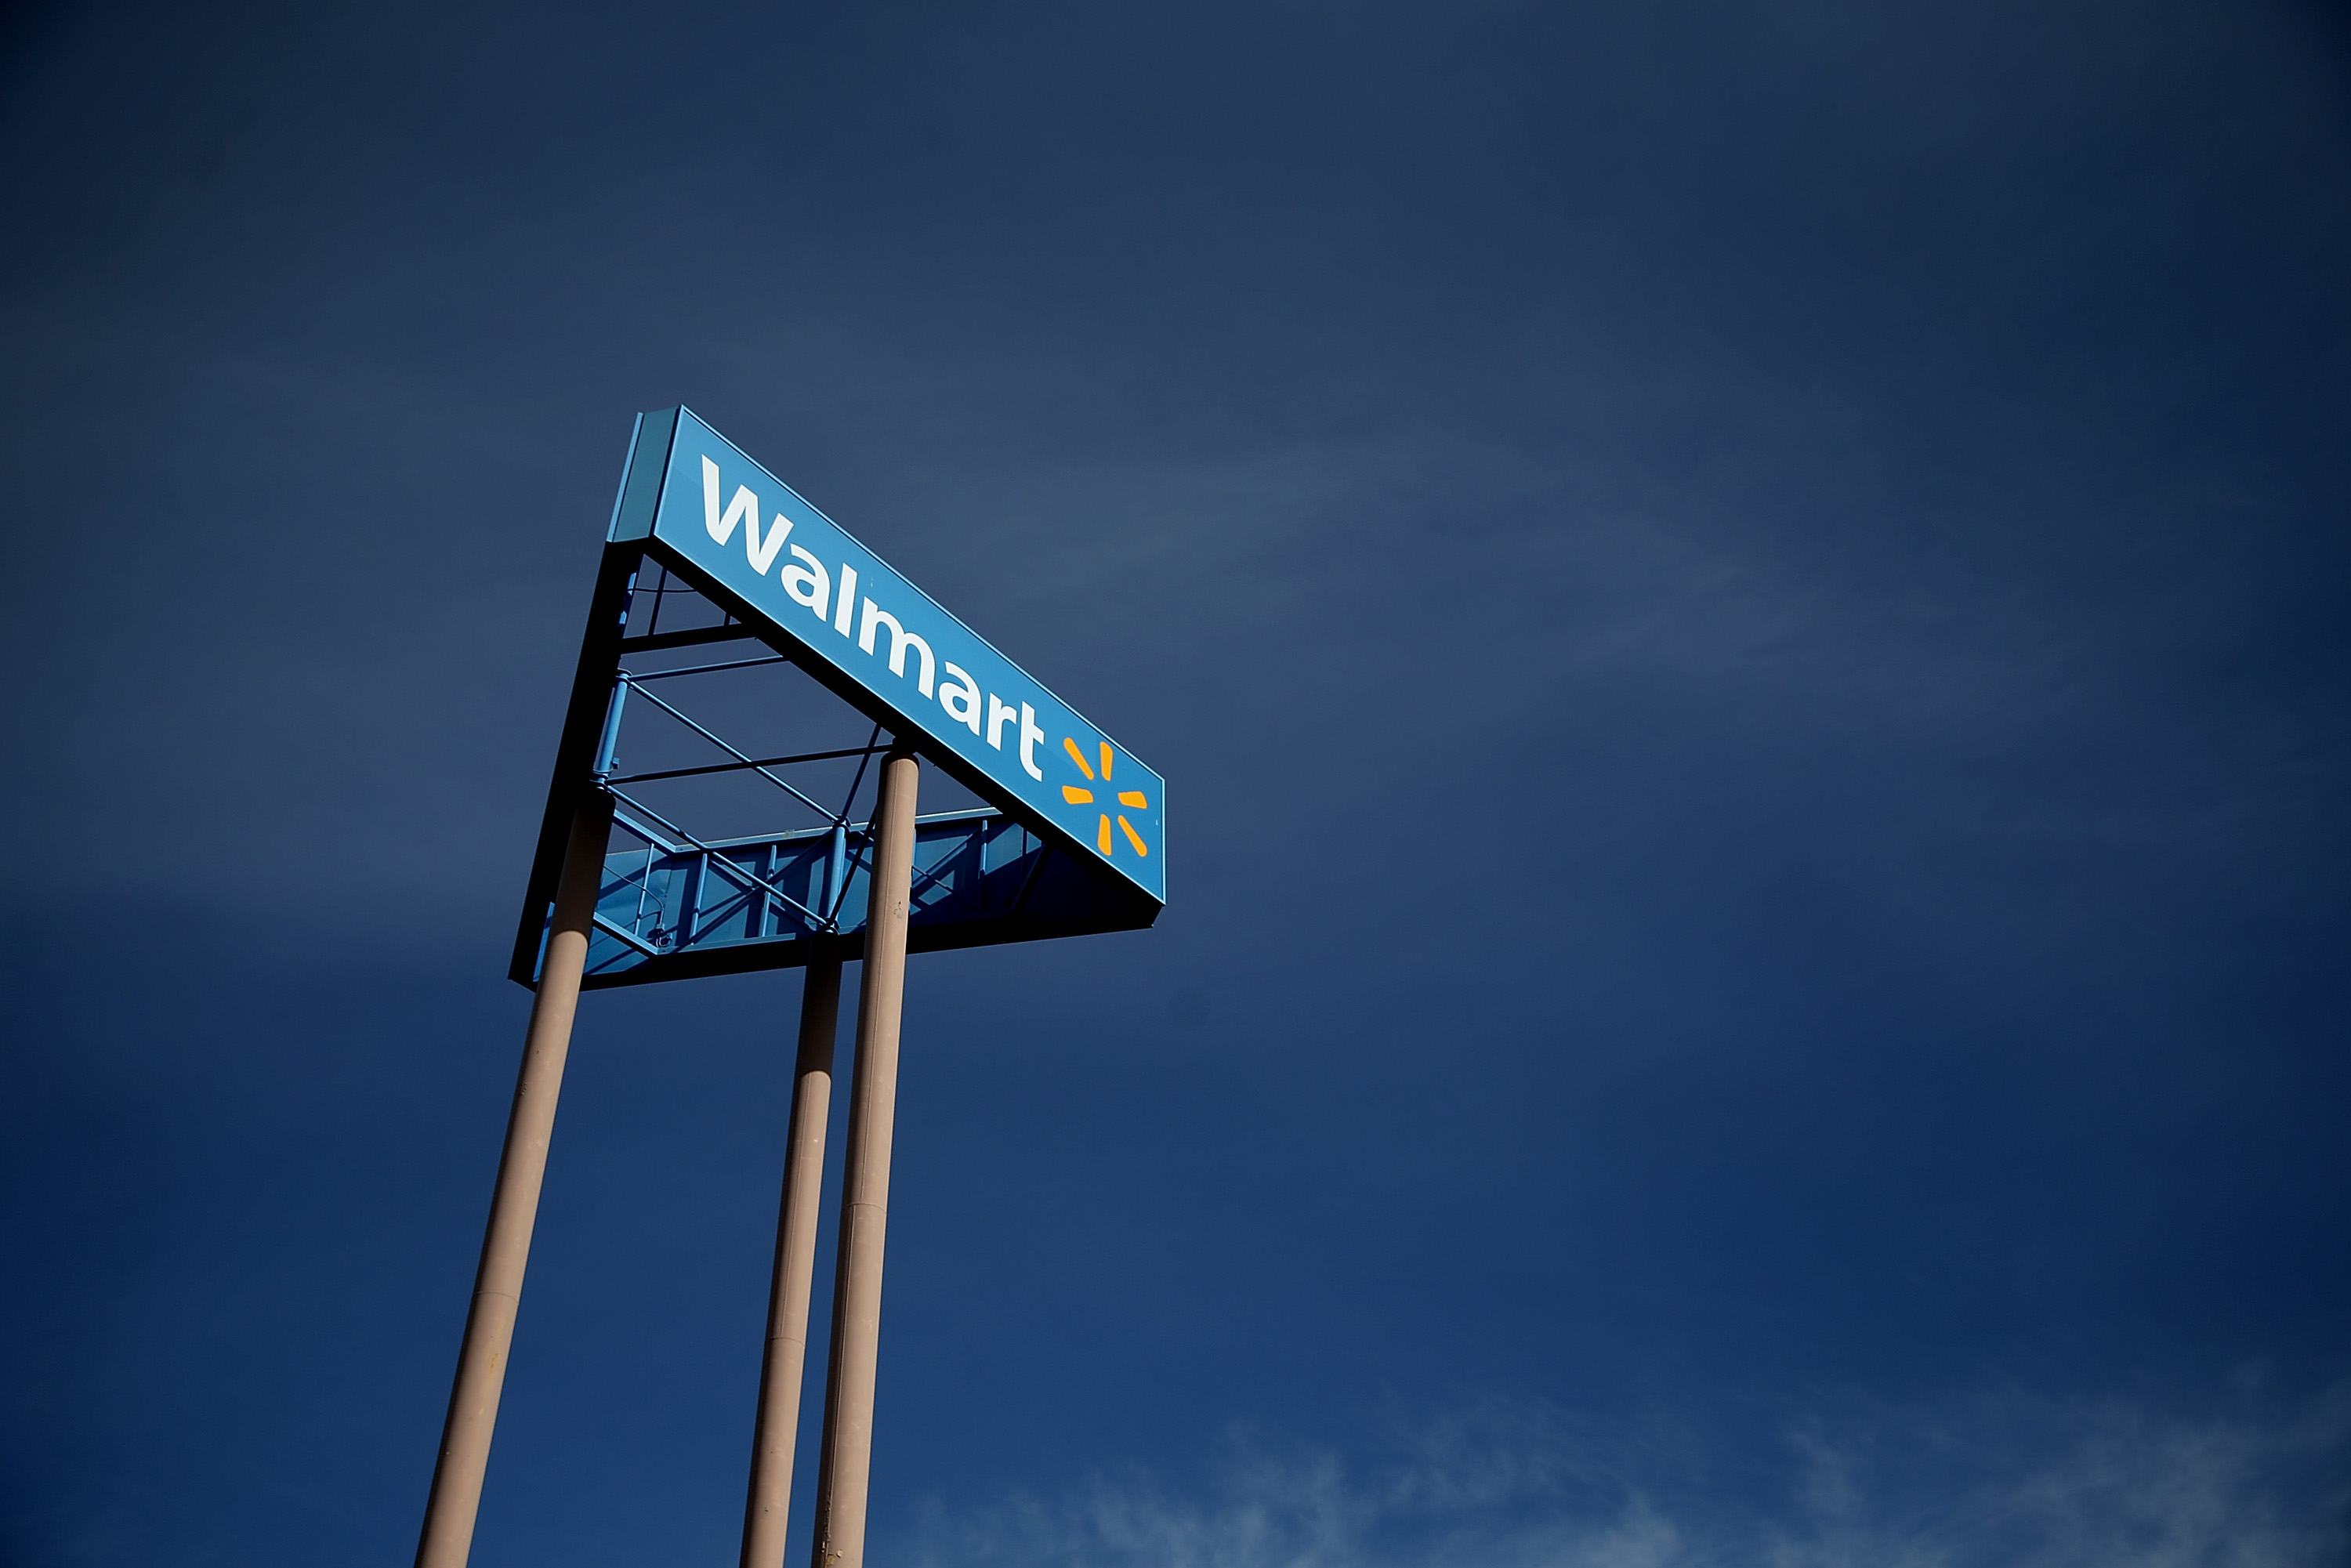 Wal-Mart Stores The retail giant held on to the top spot on the Fortune 500, edging out Exxon Mobil for the second year in a row. For fiscal year 2014, Wal-Mart's net sales totaled $473.1 billion, up 1.6% from the year-earlier period. While its sales grew domestically, Wal-Mart said the expiration of a payroll tax cut, reductions in the U.S. food stamp program, and poor winter weather hurt its results. But in the U.S., Wal-Mart is bullish about its plans to open even more small stores, which compete with drugstores and small grocery stores.